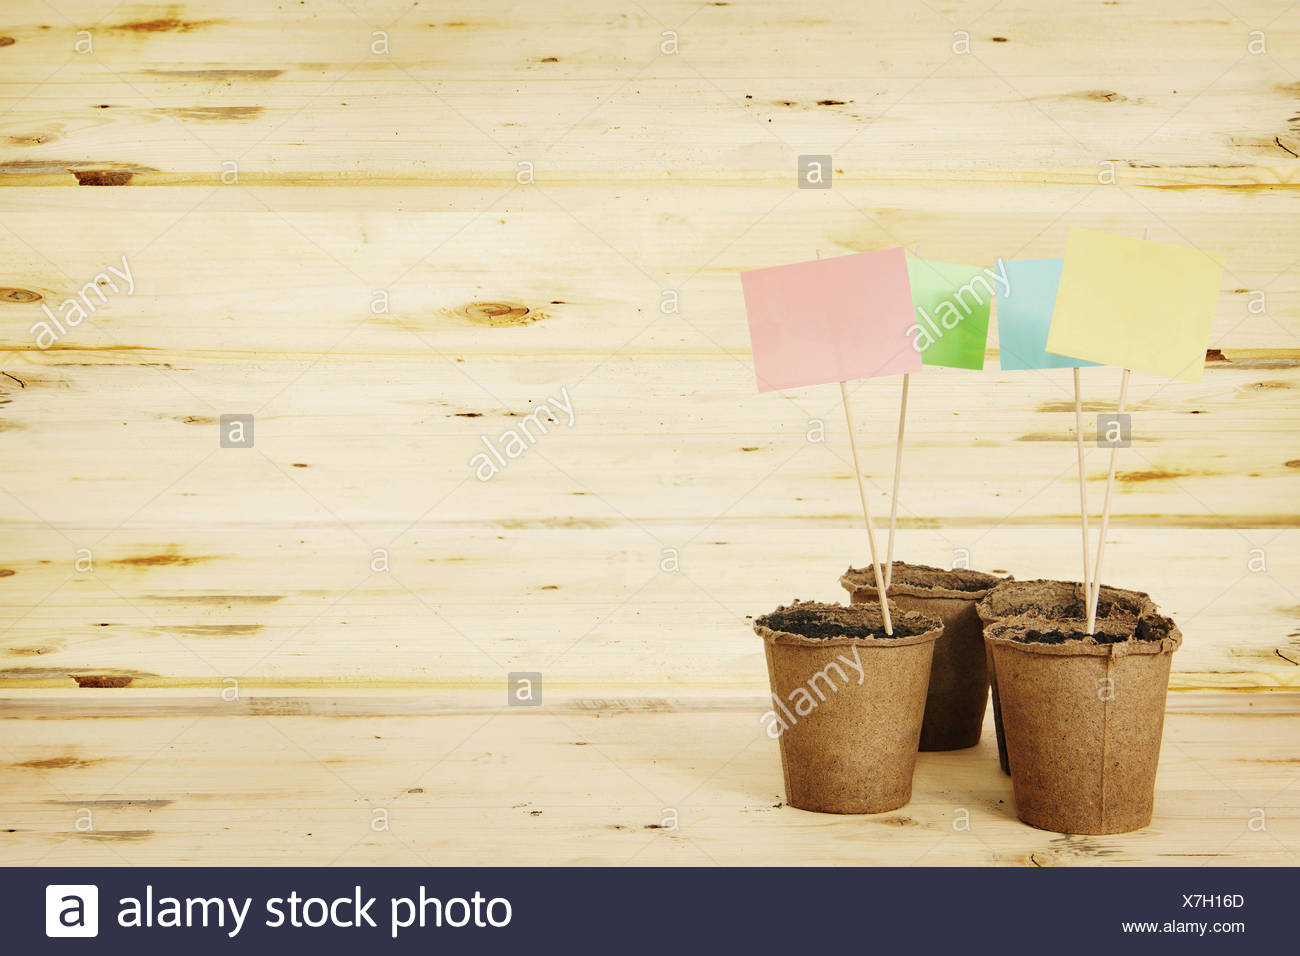 Peat pots with multicolored paper nameplates on the boards - Stock Image